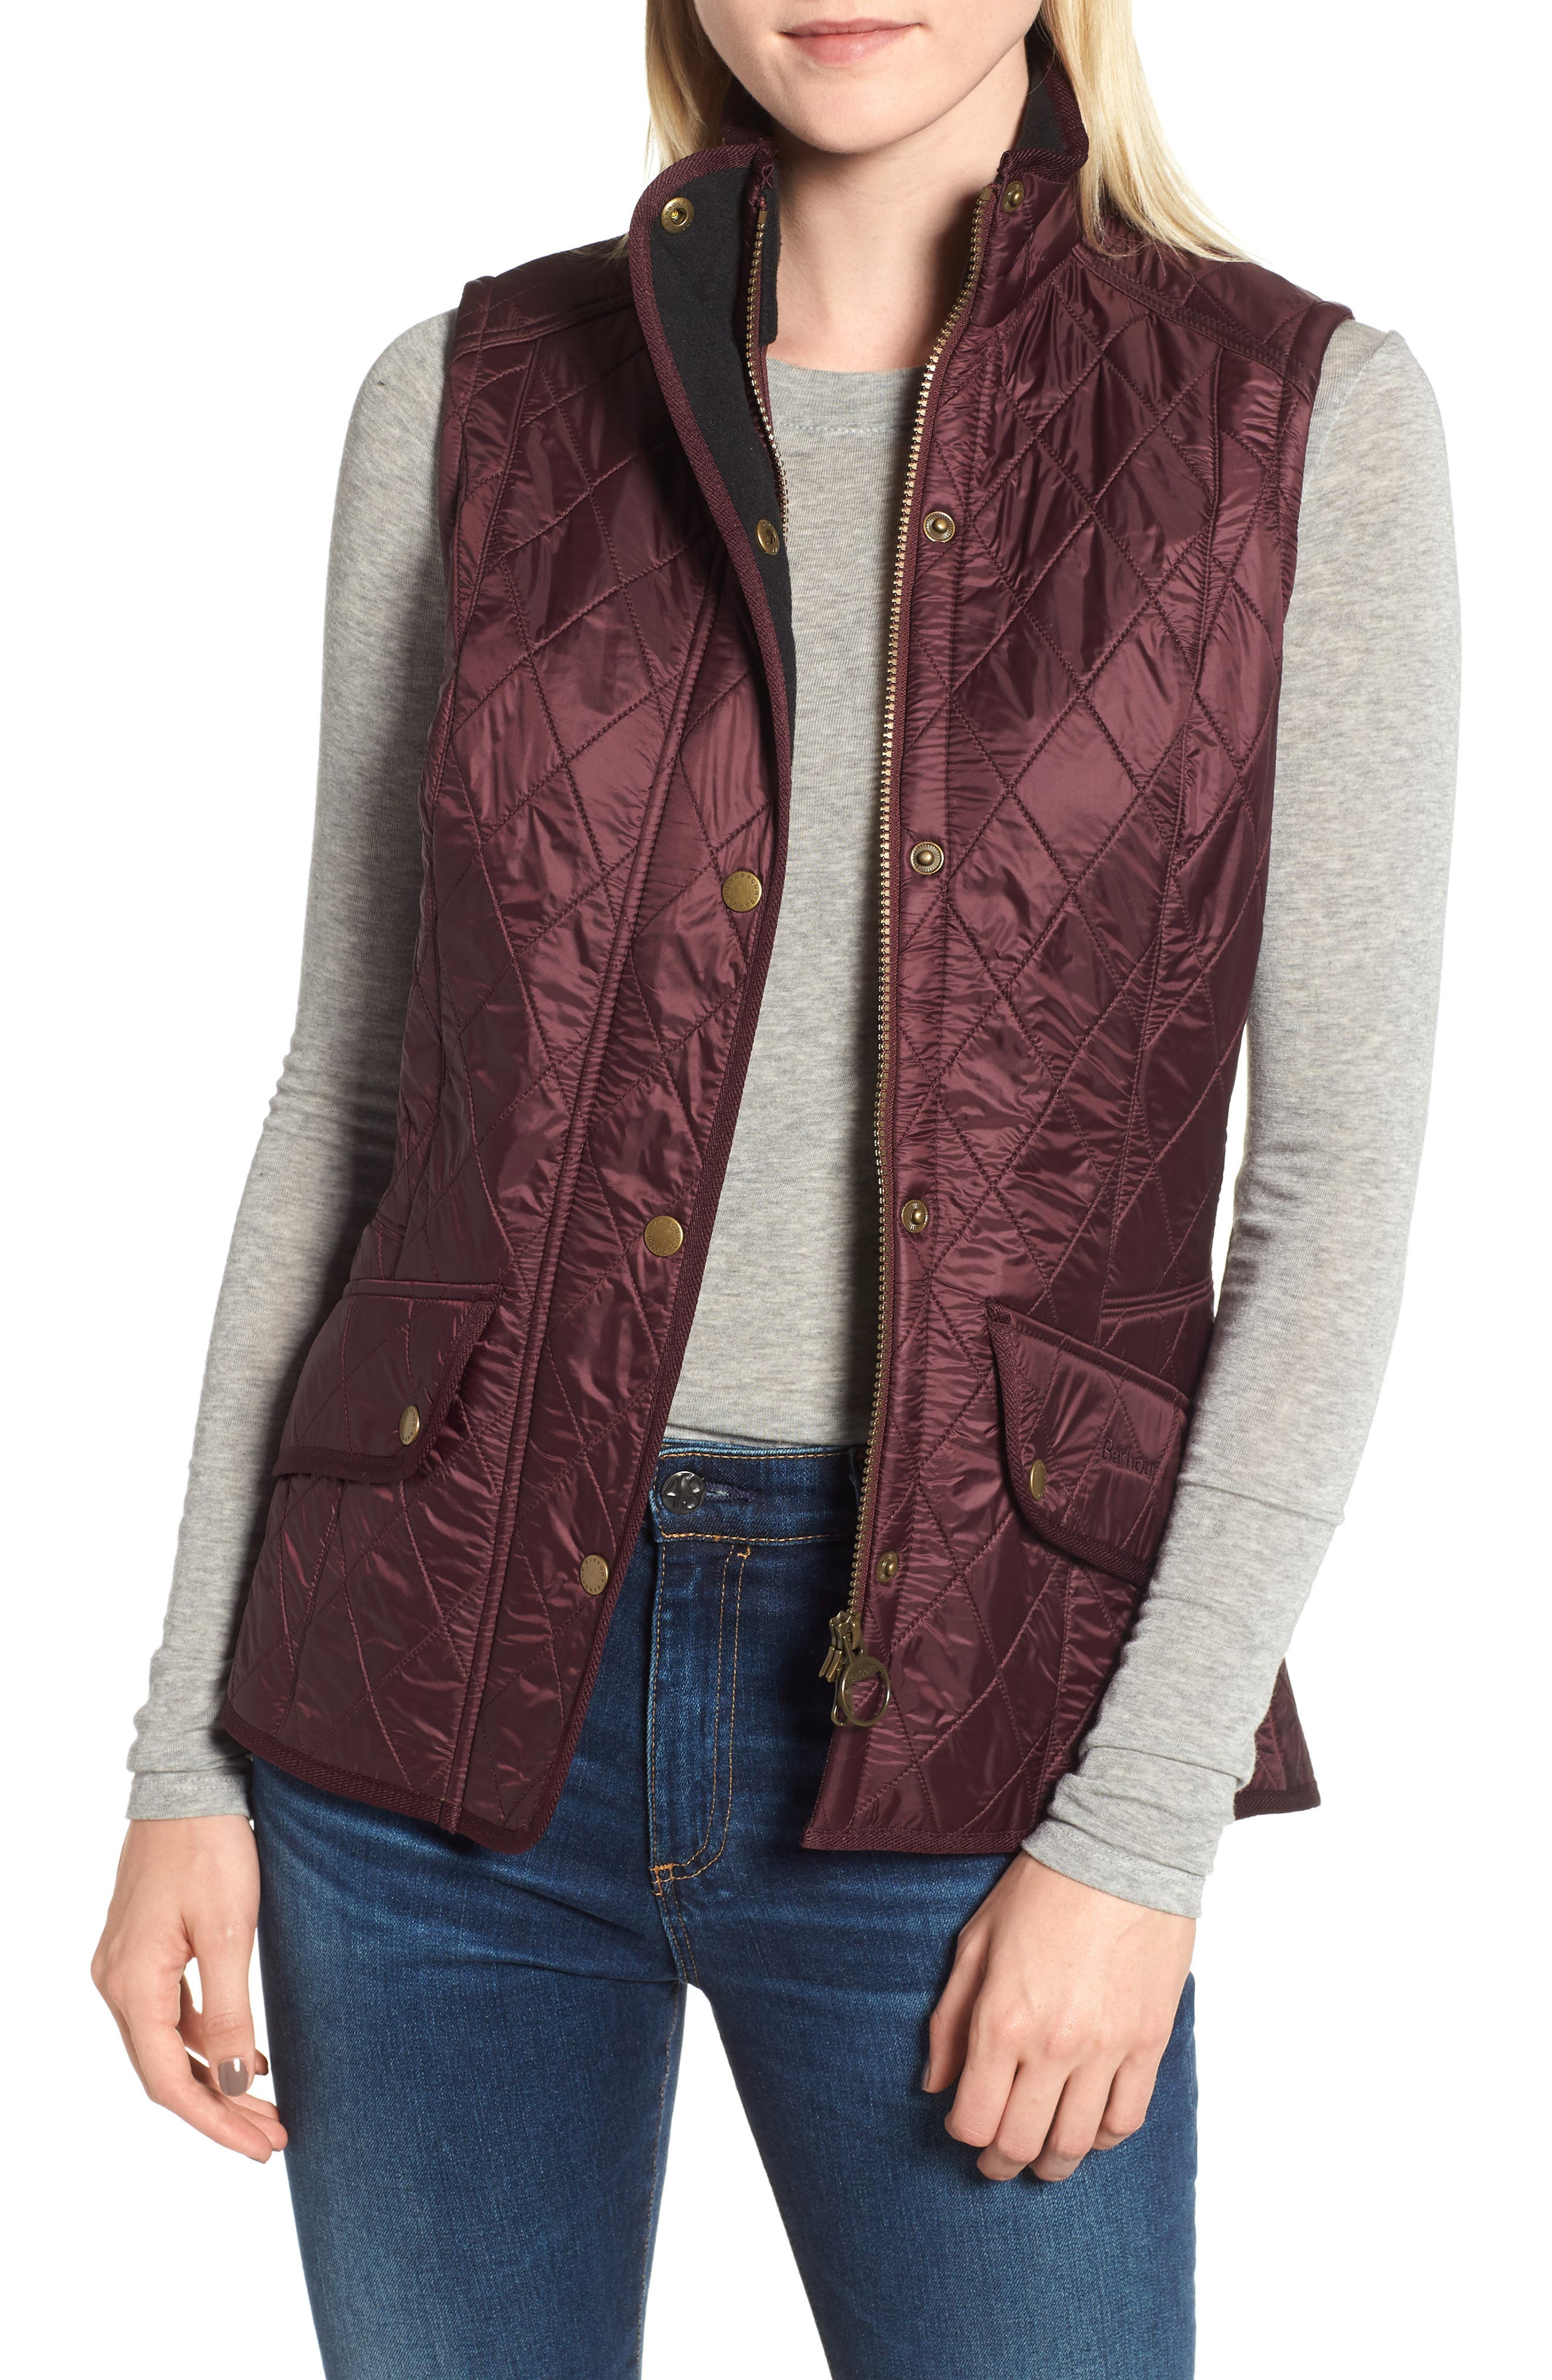 BARBOUR, 'Cavalry' Quilted Vest, Main thumbnail 1, color, AUBERGINE/ NAVY